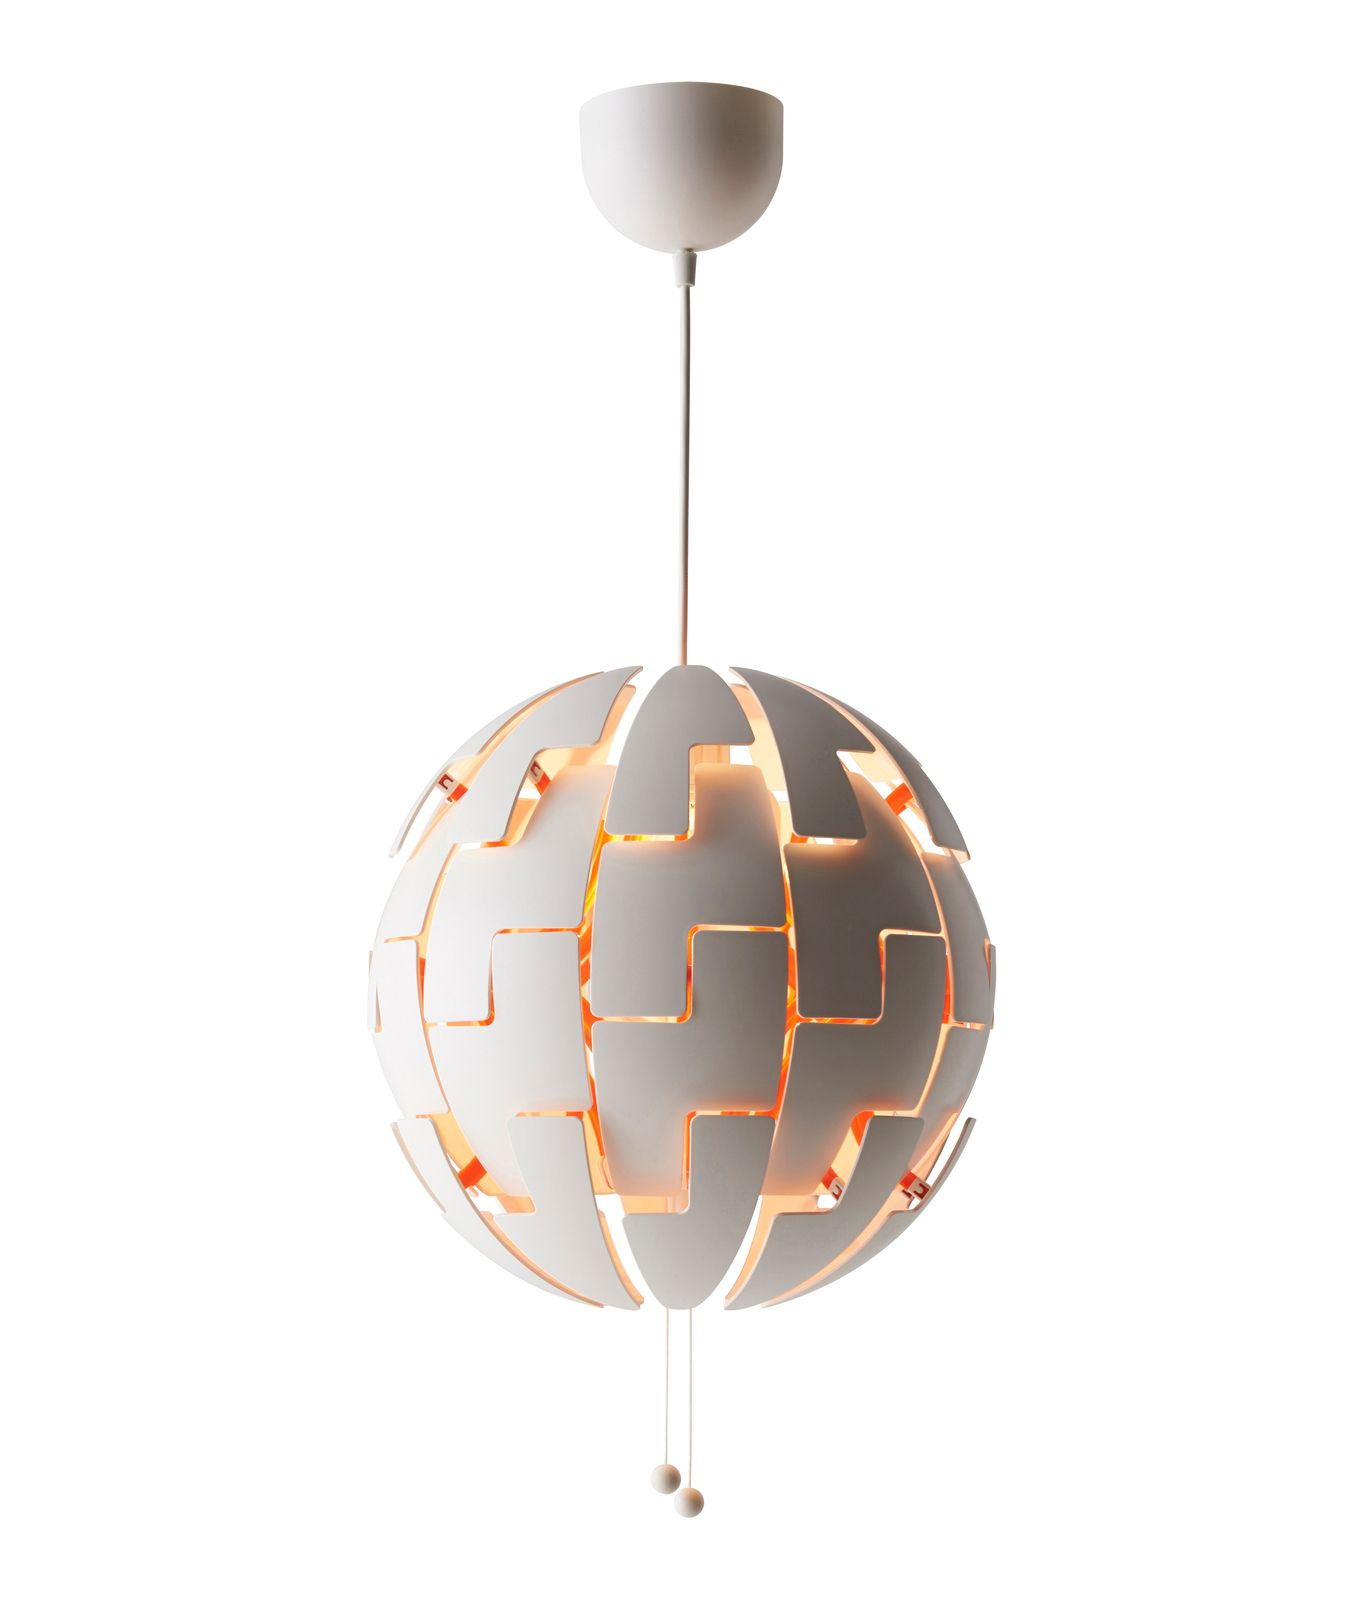 A Touch Of Outer Space For Your Inner Sanctum   IKEA PS 2014 Pendant Lamp  One Thing Is For Sure. Hang A Couple Of IKEA PS 2014 Pendant Lamps Over  Your ...